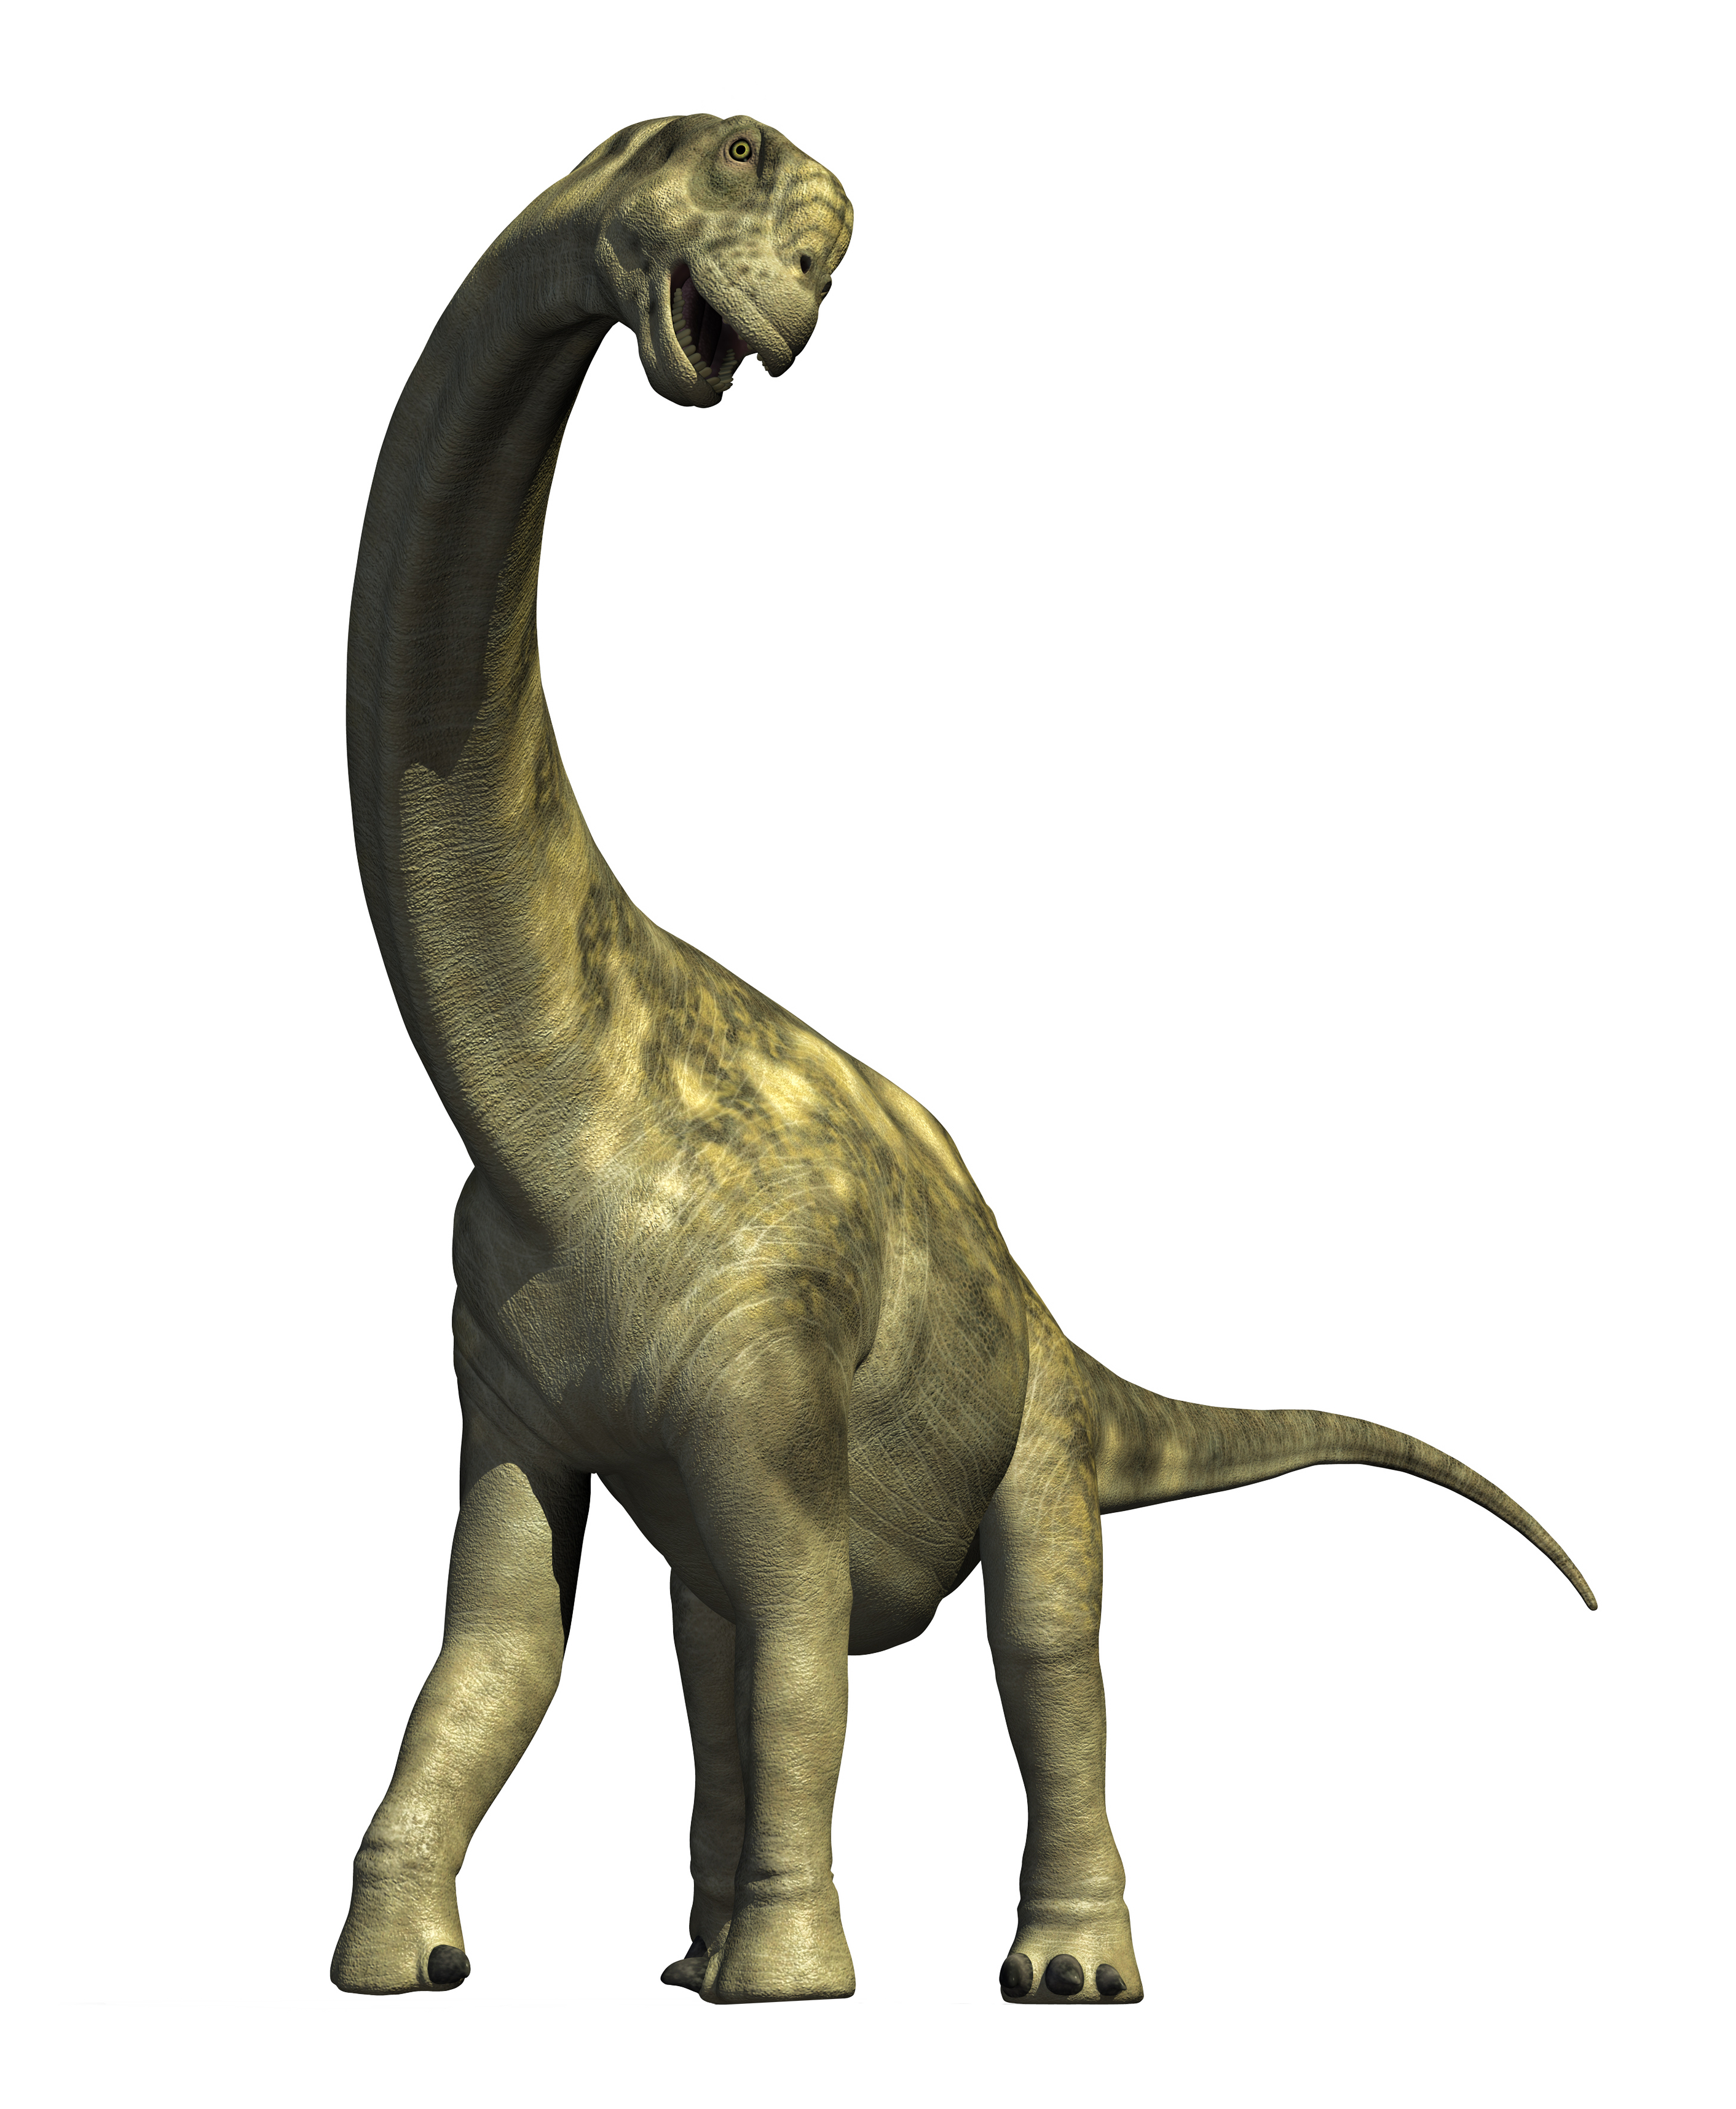 ... download png image dinosaur png in this page you can download png